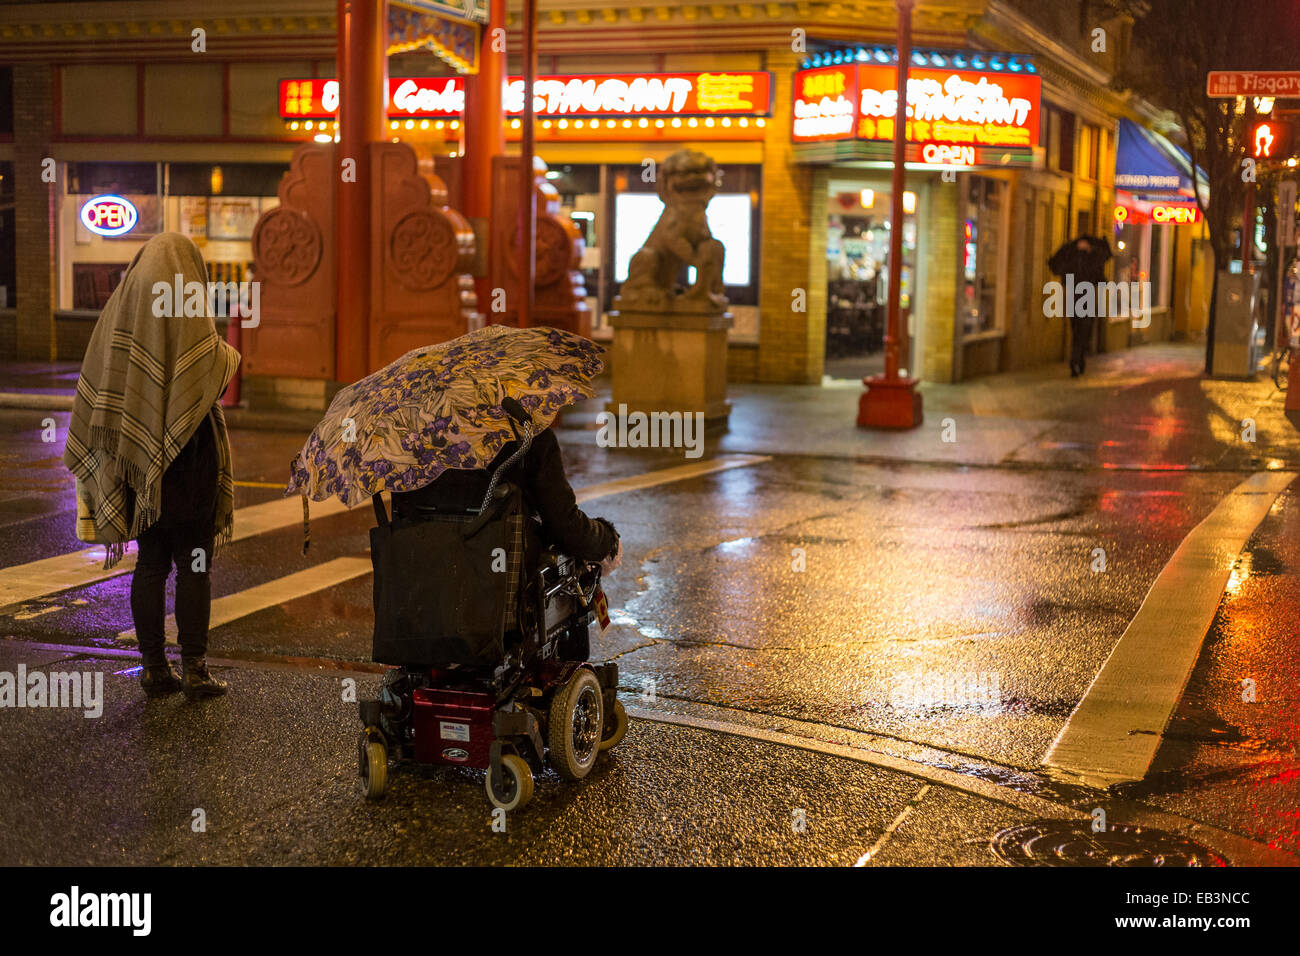 Disabled man in wheelchair with umbrella in Chinatown on rainy night-Victoria, British Columbia, Canada. - Stock Image